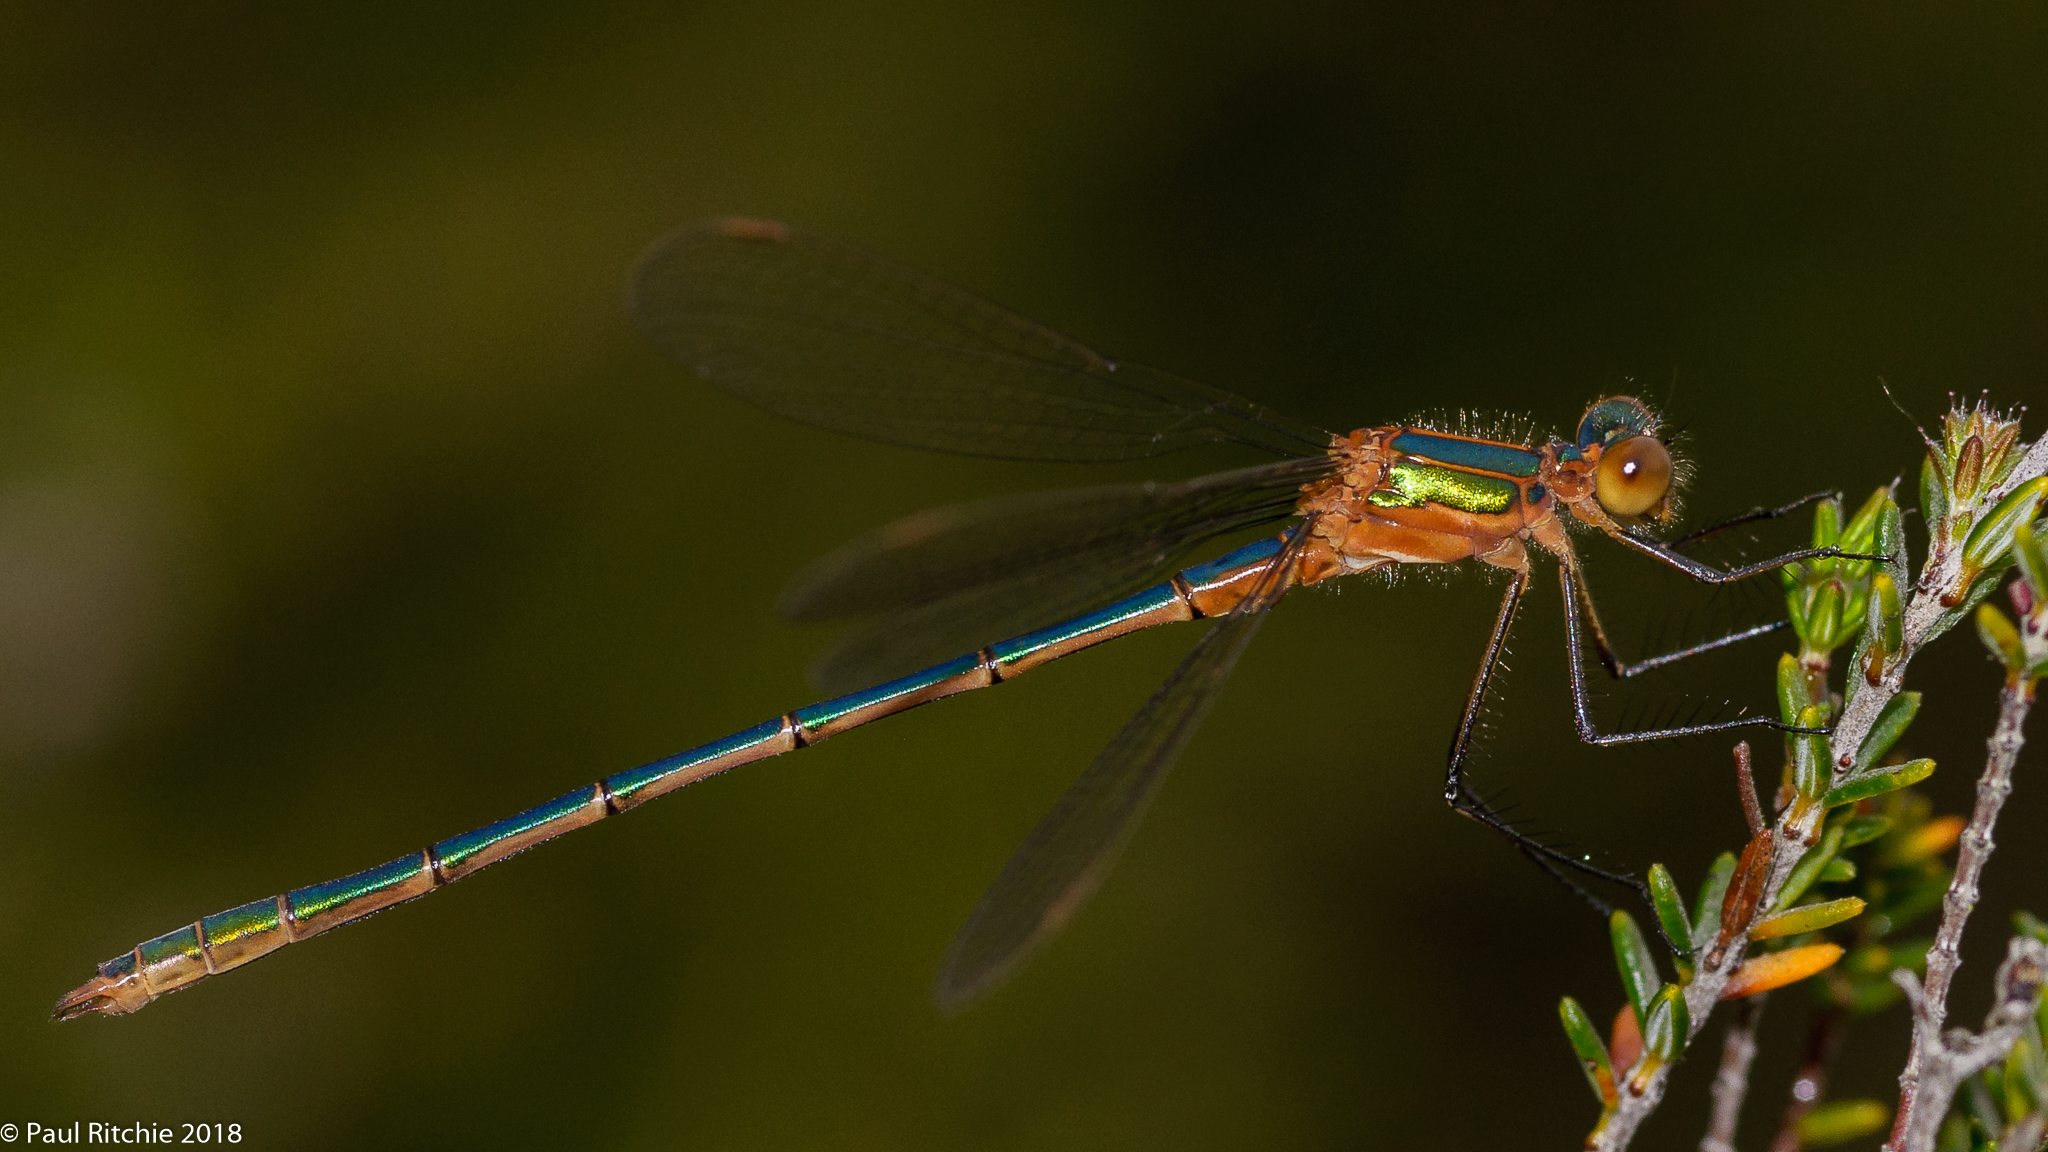 Common Emerald Damselfly (Lestes sponsa) - immature male